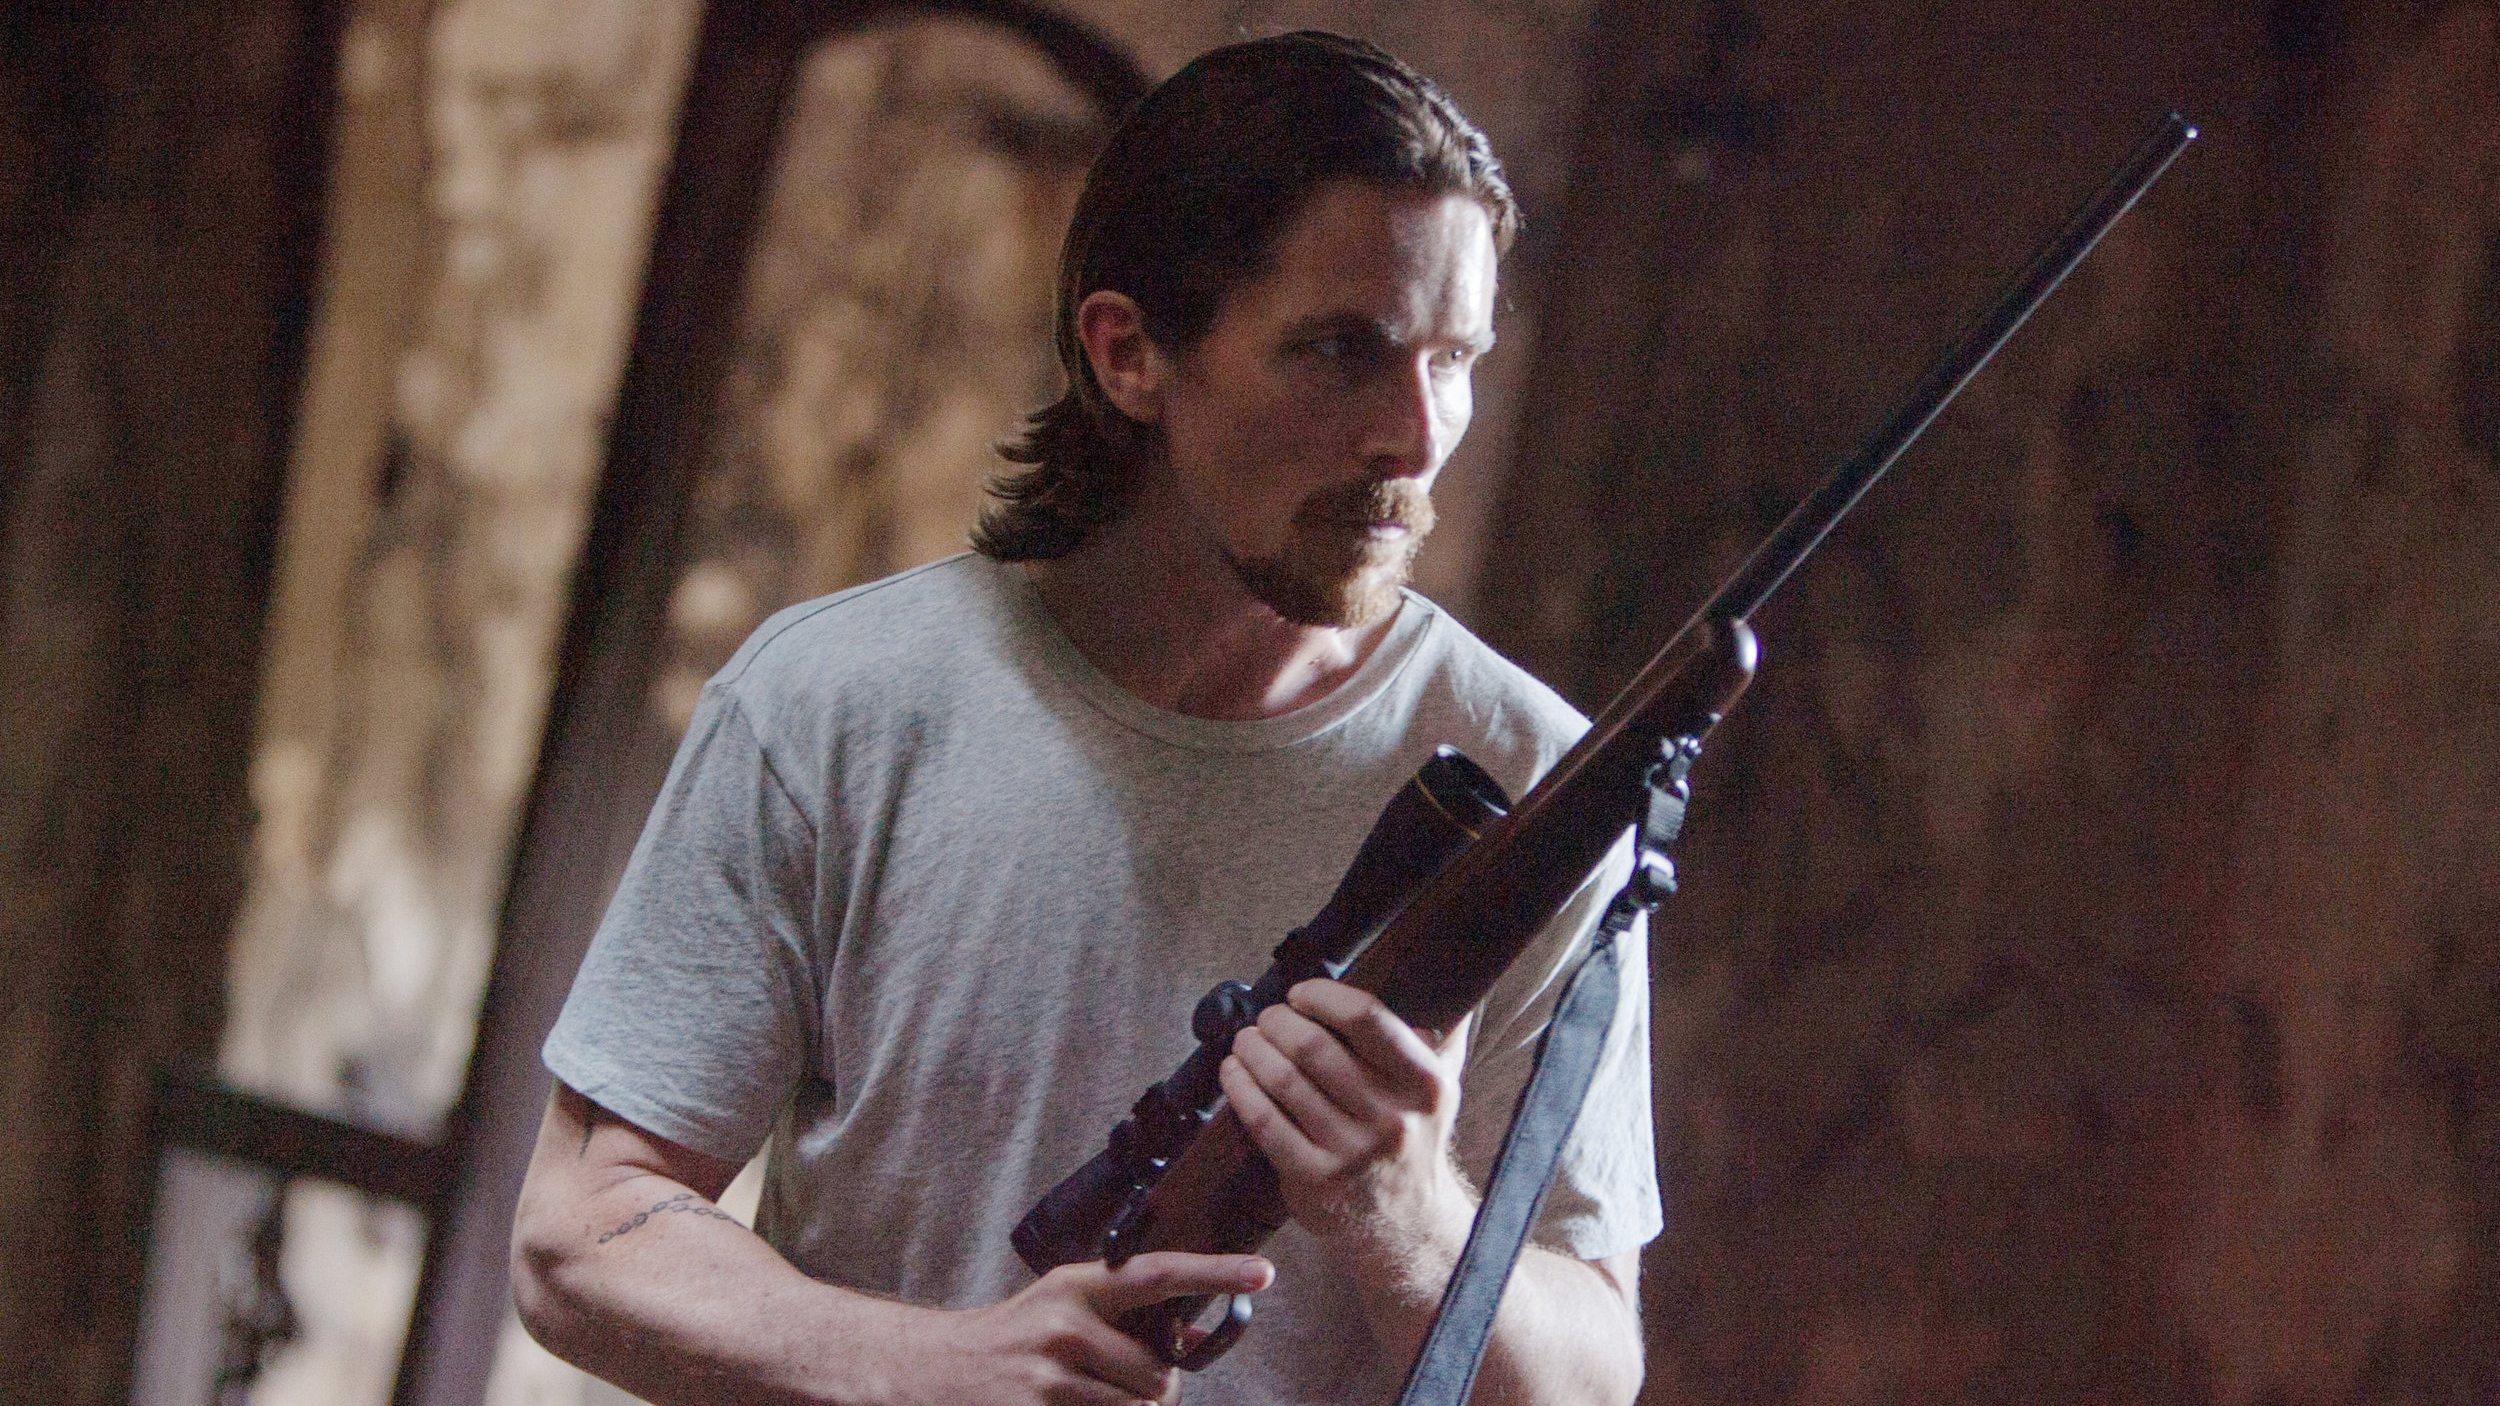 Christian-Bale-in-Out-of-the-Furnace.jpg